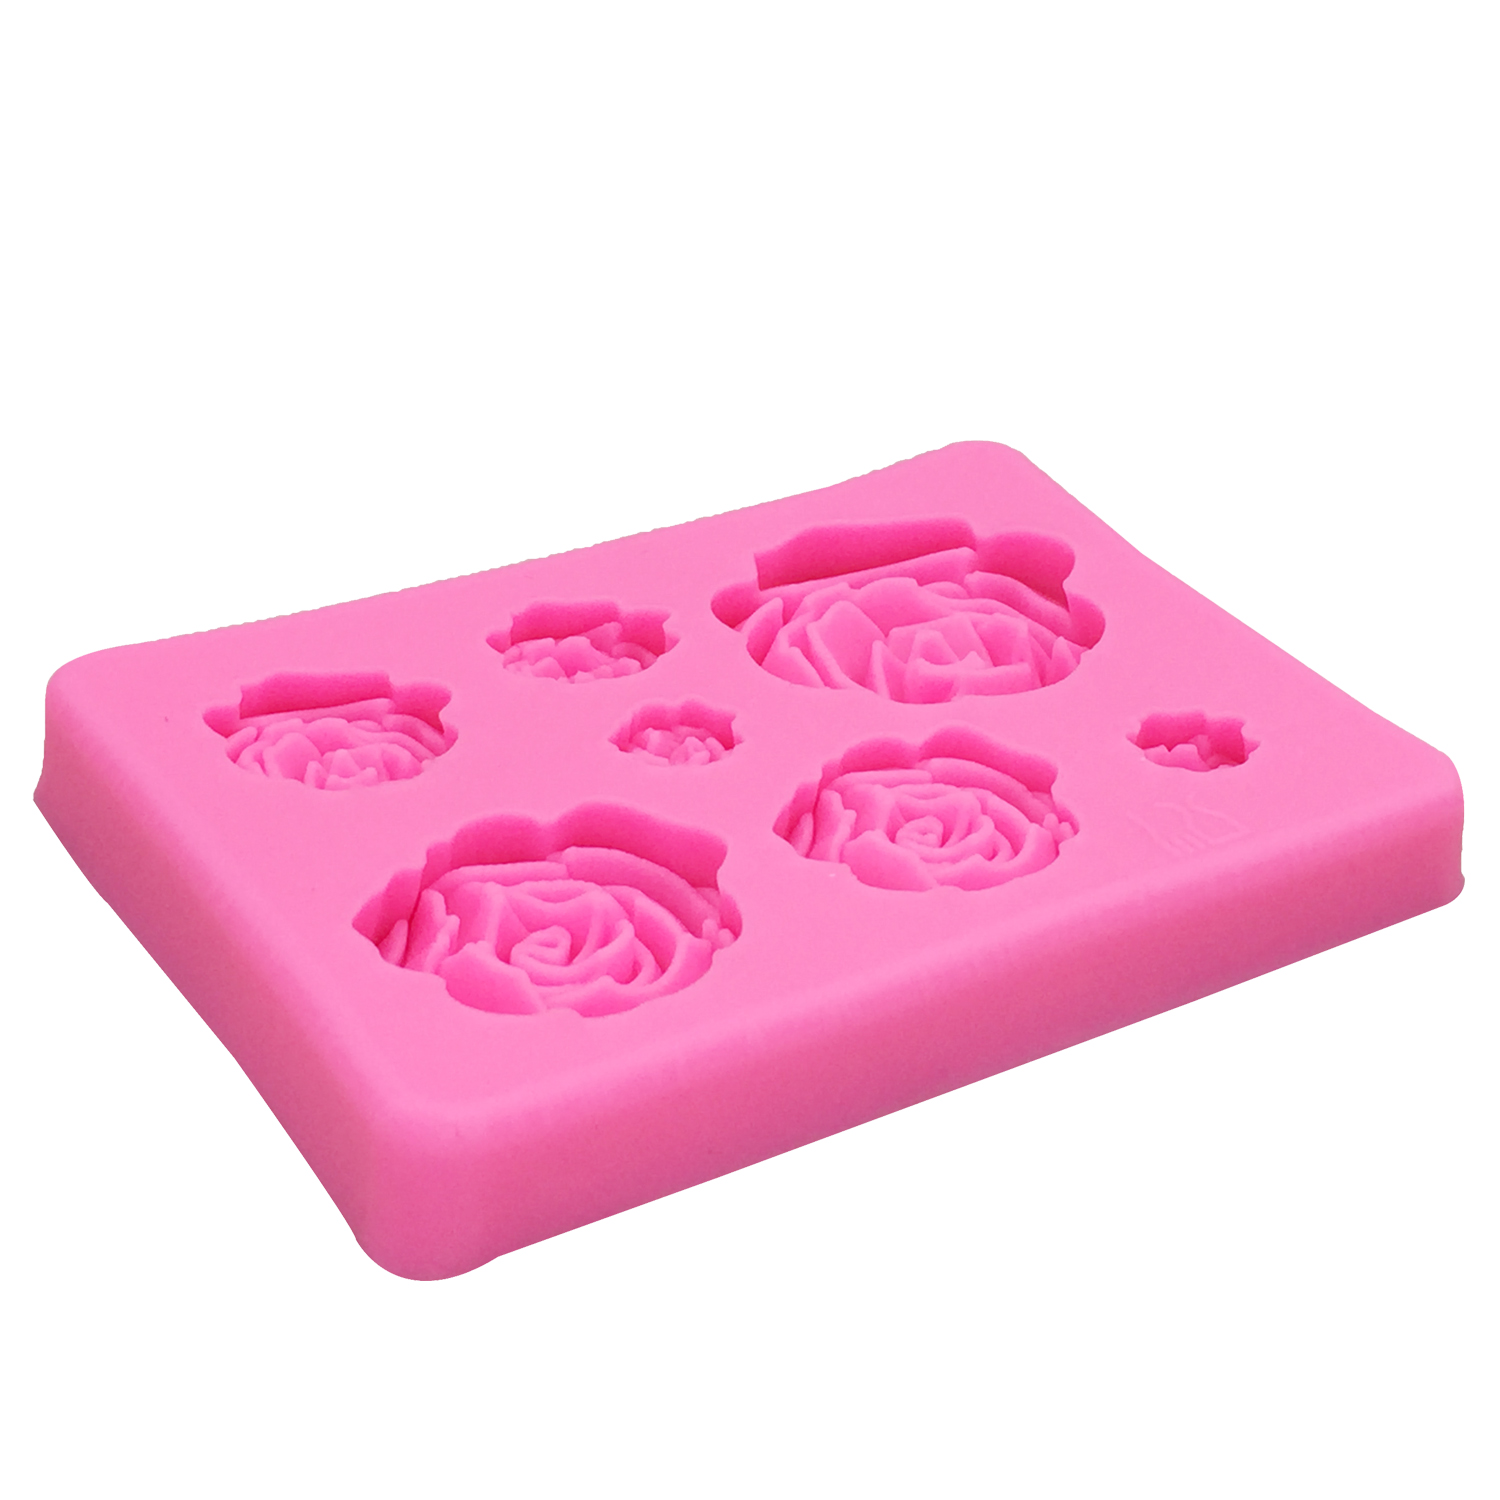 Rose Flowers Silicone Fondant Mold 2